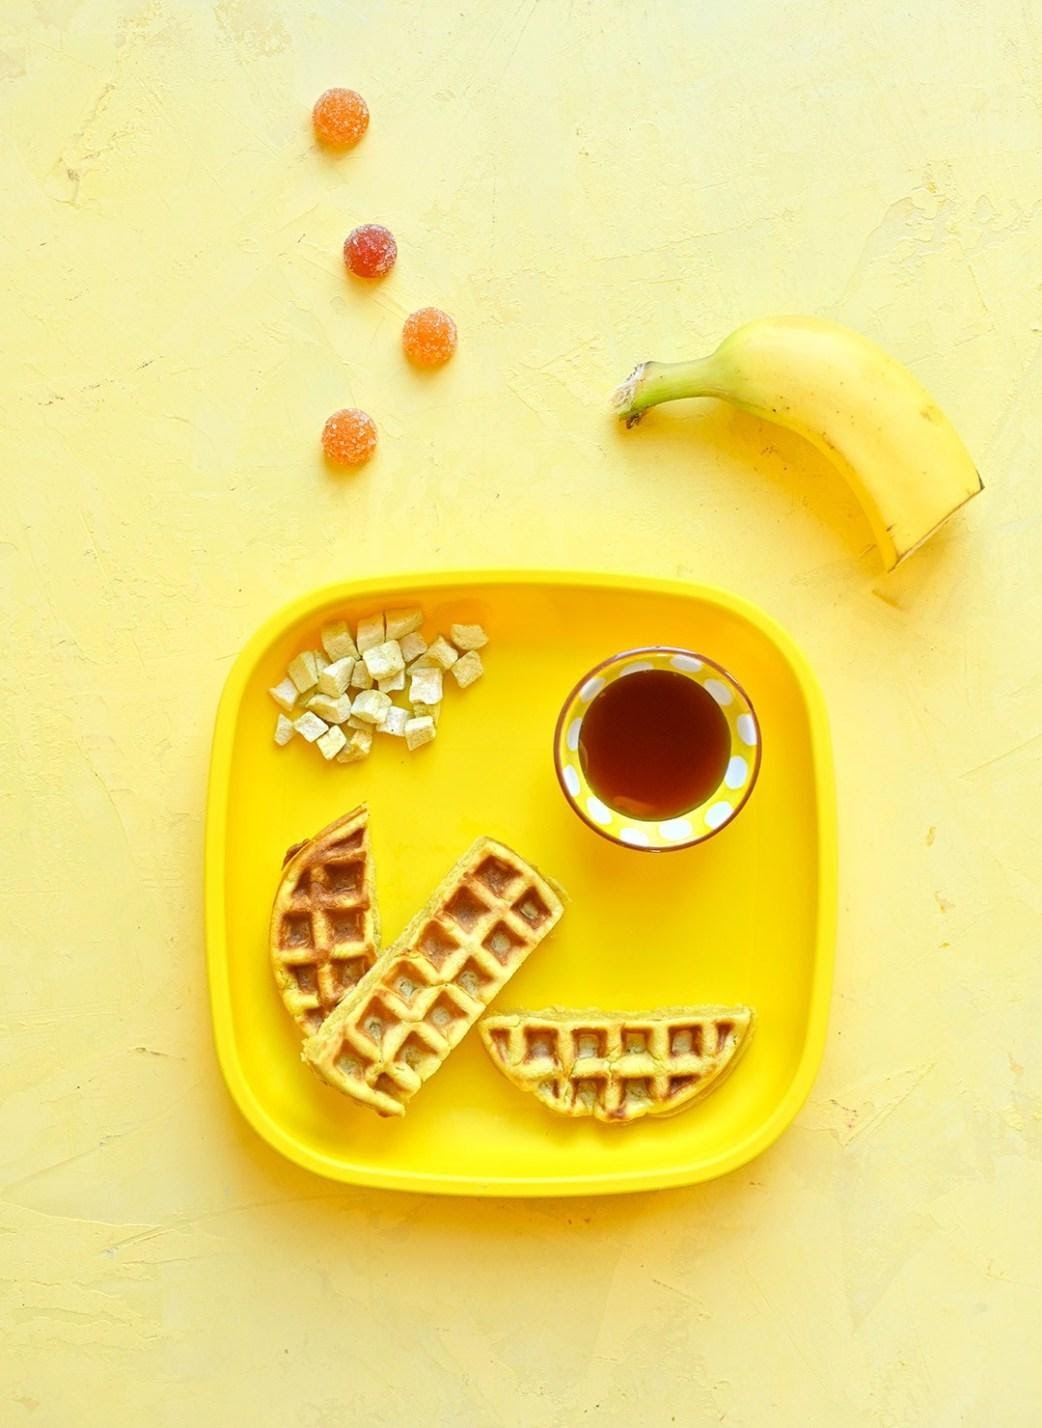 Yellow background with a banana, and yellow kids plate. On the plate is a cut up waffle, small cup with maple syrup, and cut up banana. Next to the plate are SmartyPants gummy vitamins.